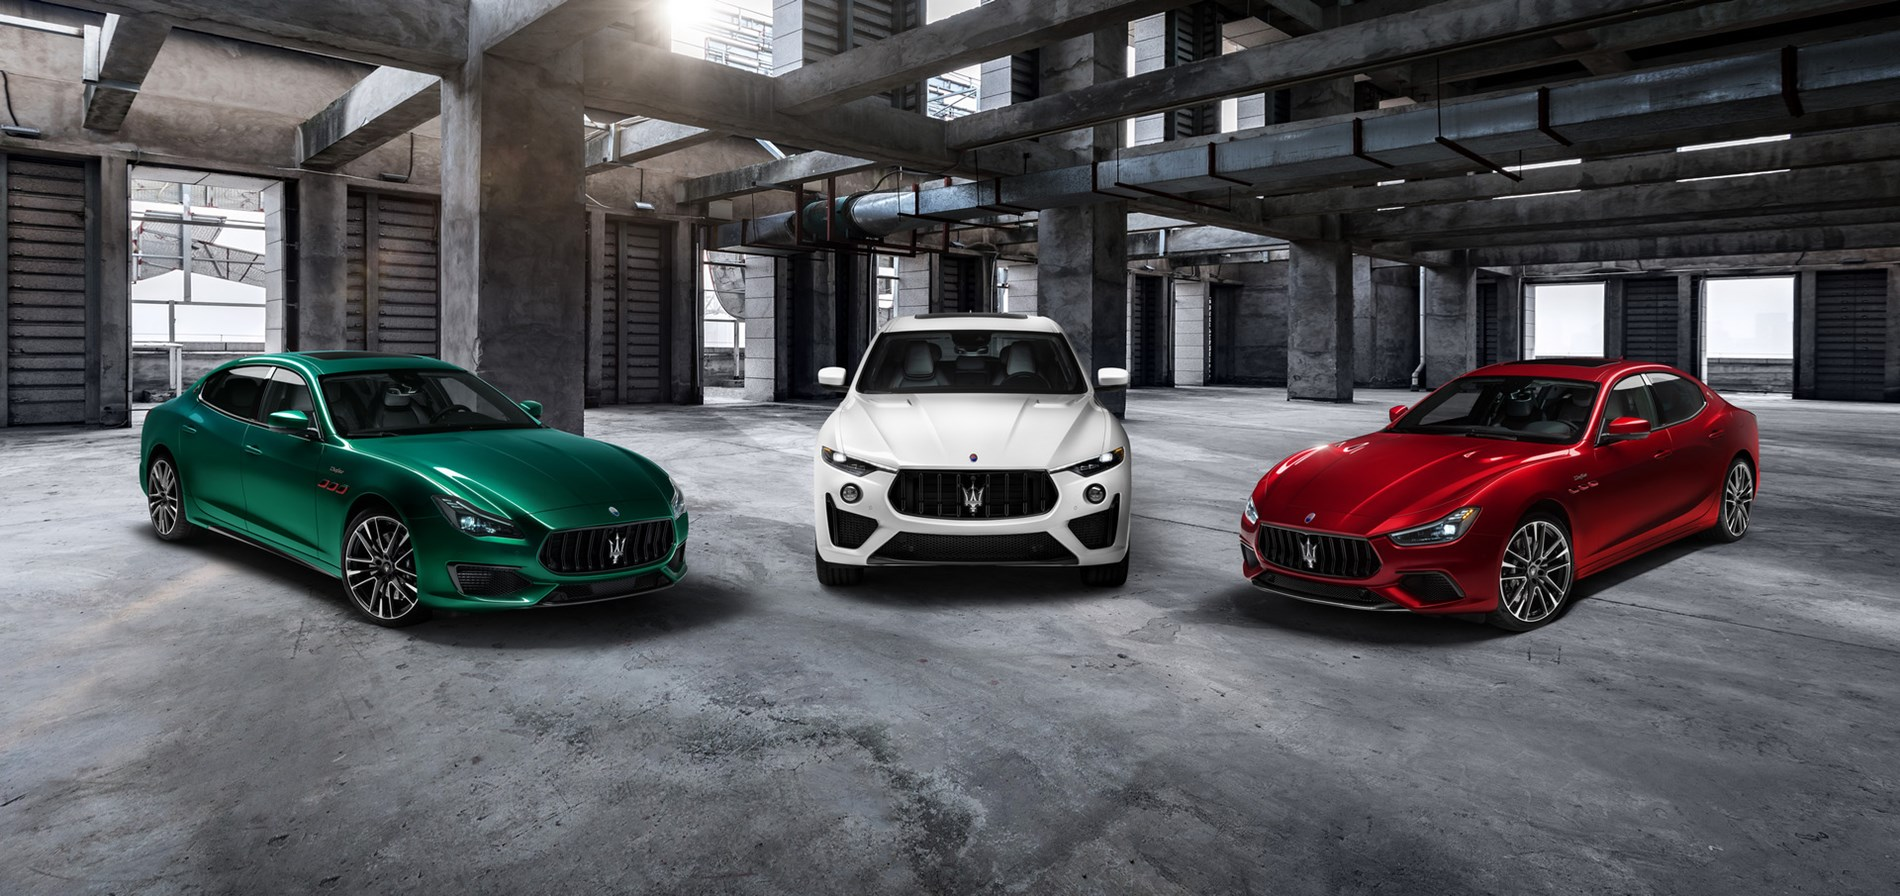 With the new Trofeo collection, Ghibli and Quattroporte are transformed into Maserati super-sedans